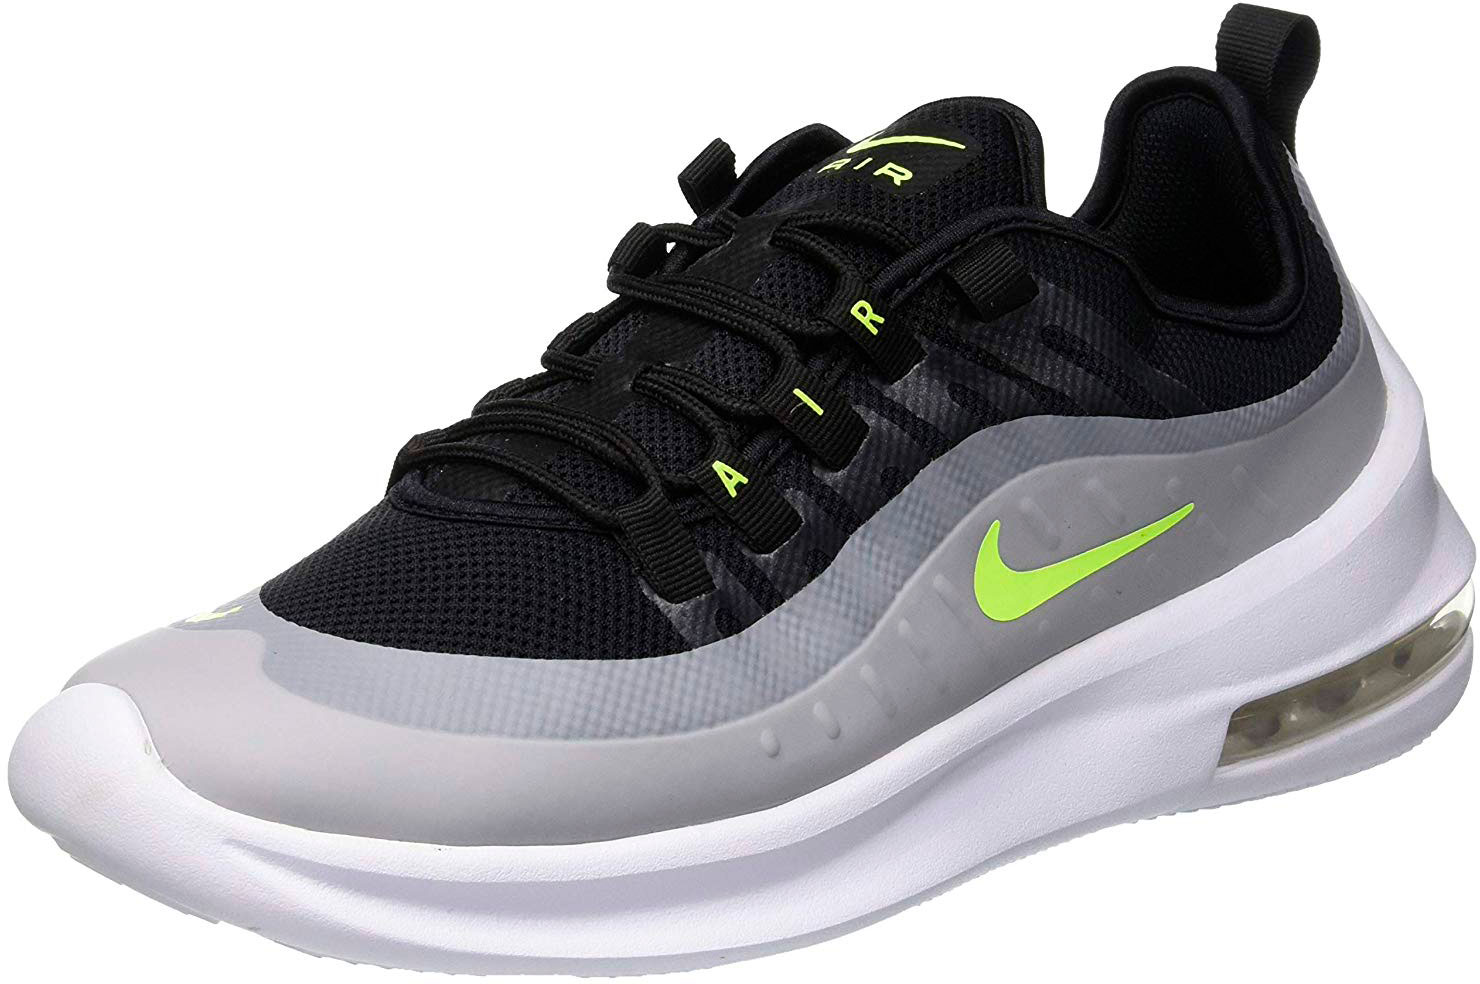 new concept 2ce88 8470c Кроссовки Nike Air Max Axis AA2146-004 45 (12.5) 30.5 см (887224343669